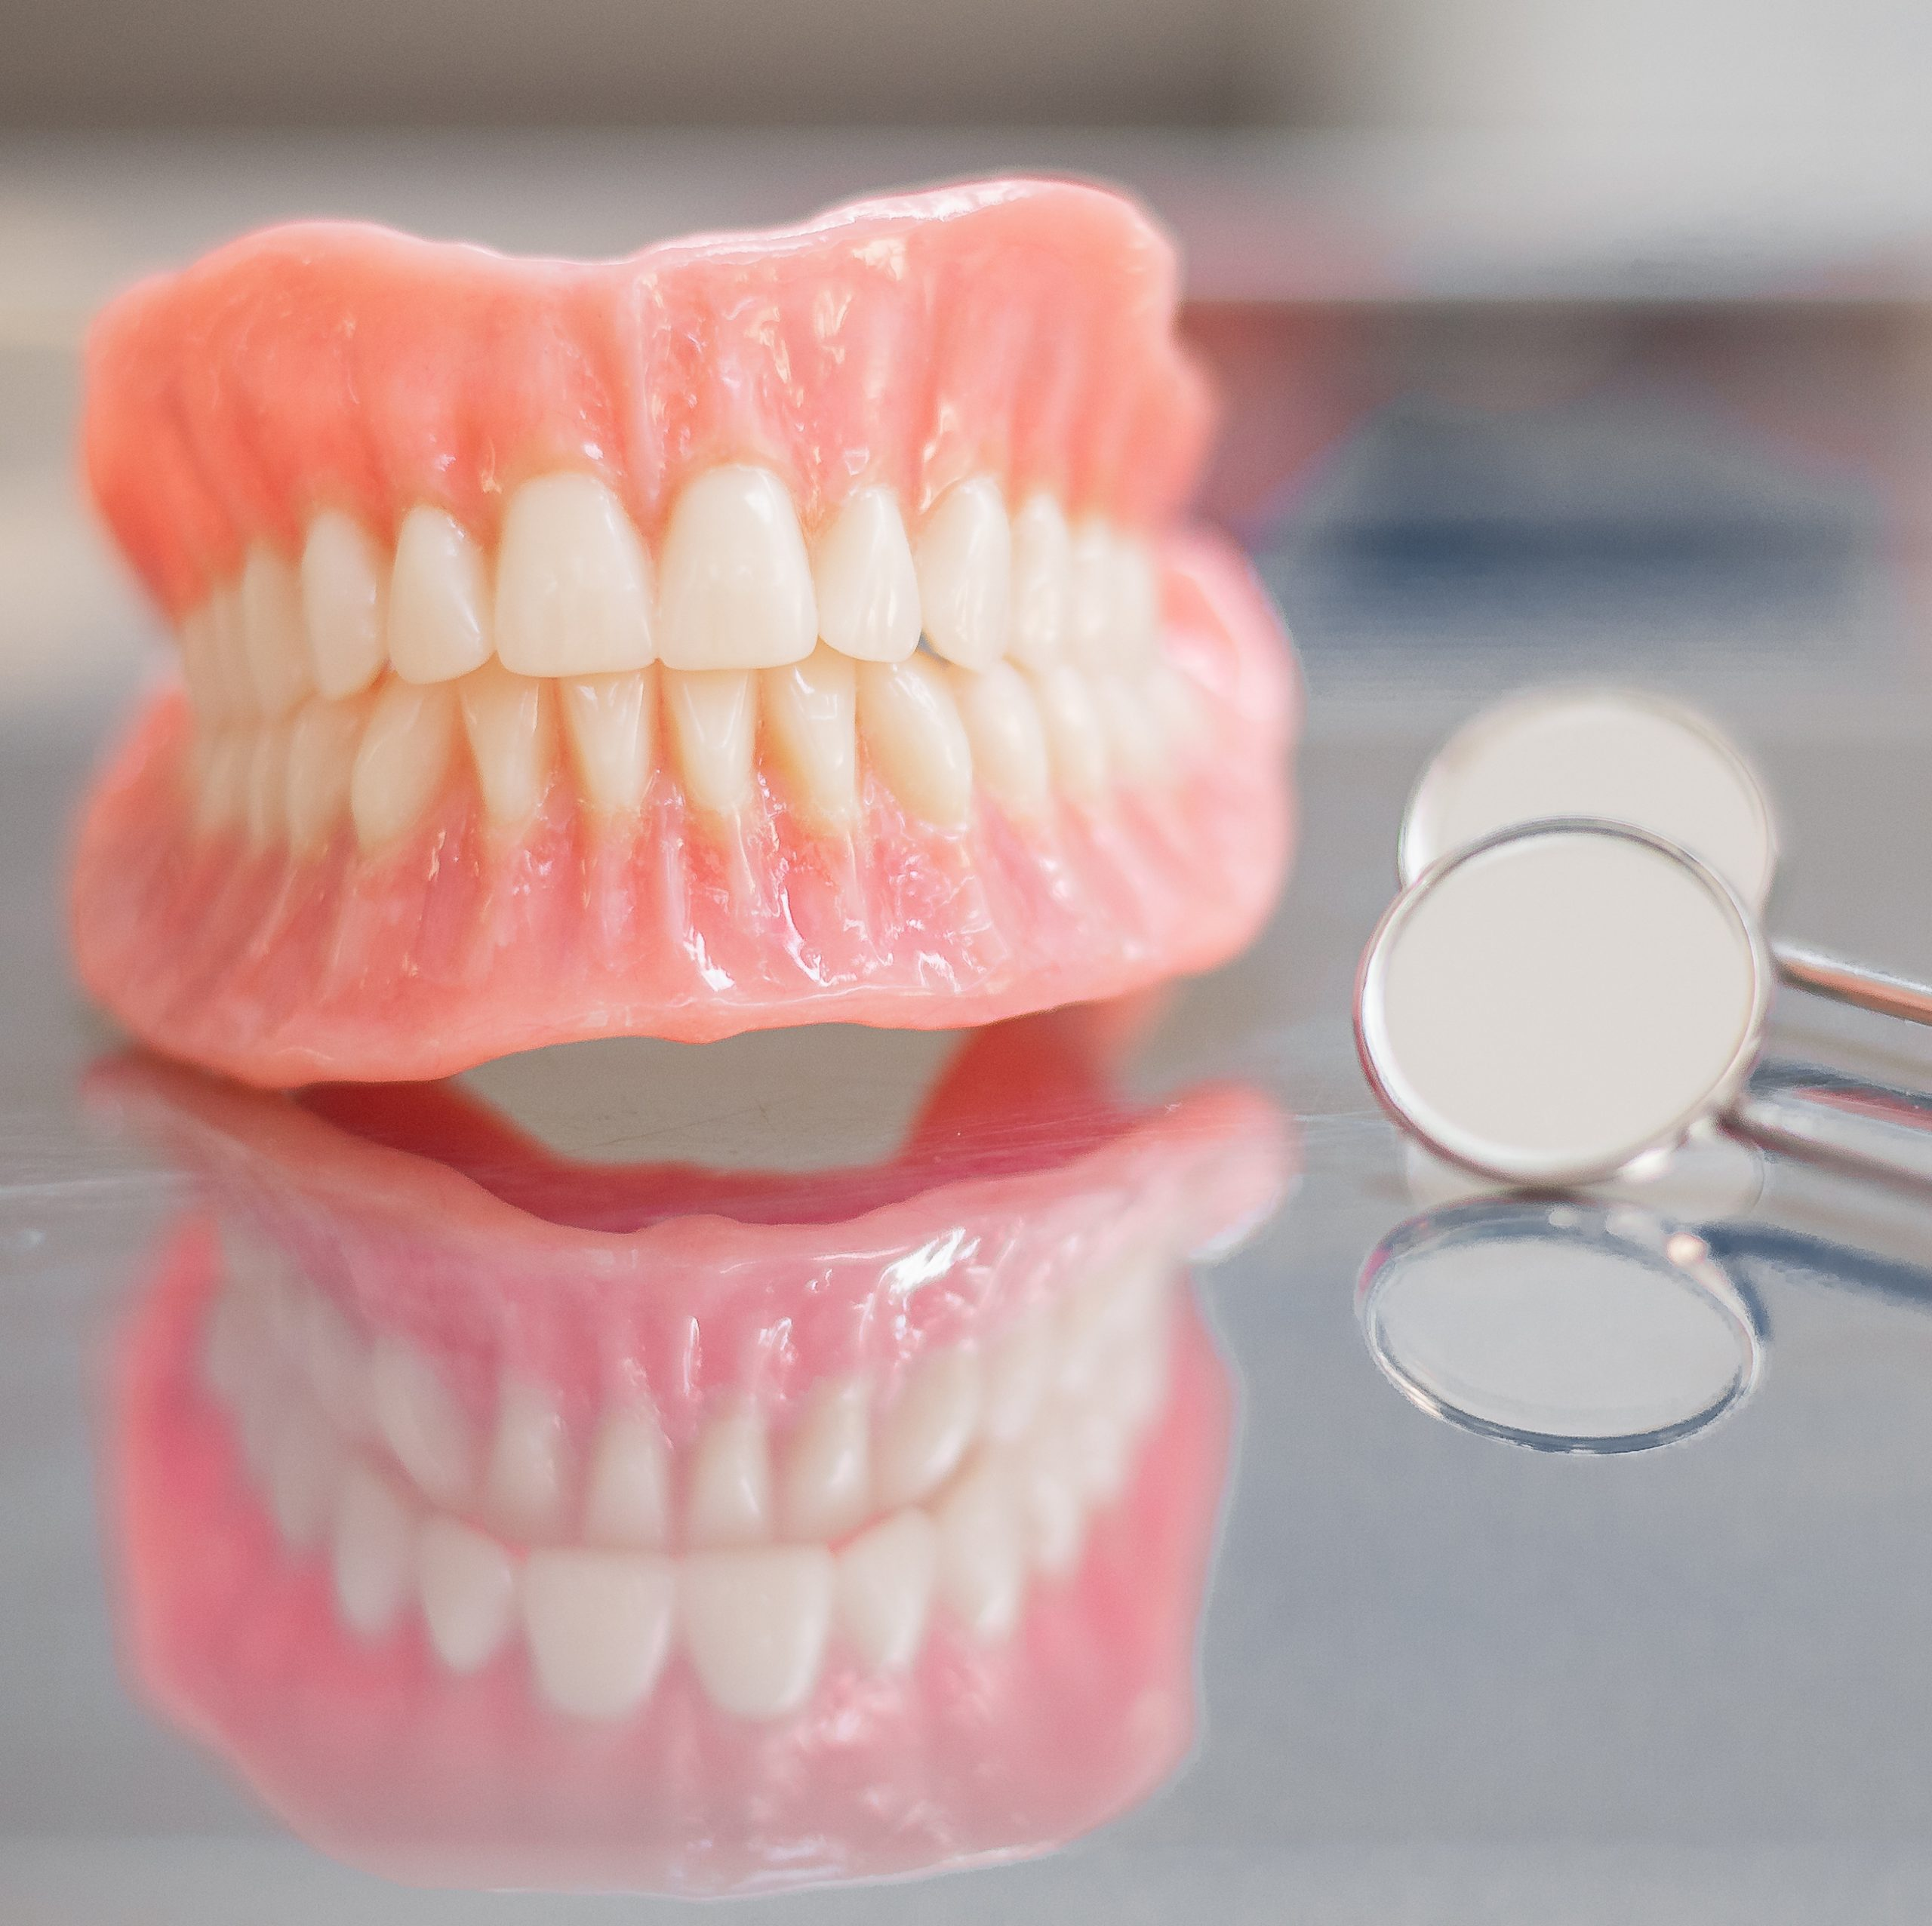 Two dentures. Instruments and dental hygienist checkup concept with teeth model dentures and mouth mirror. Regular dentist checkups